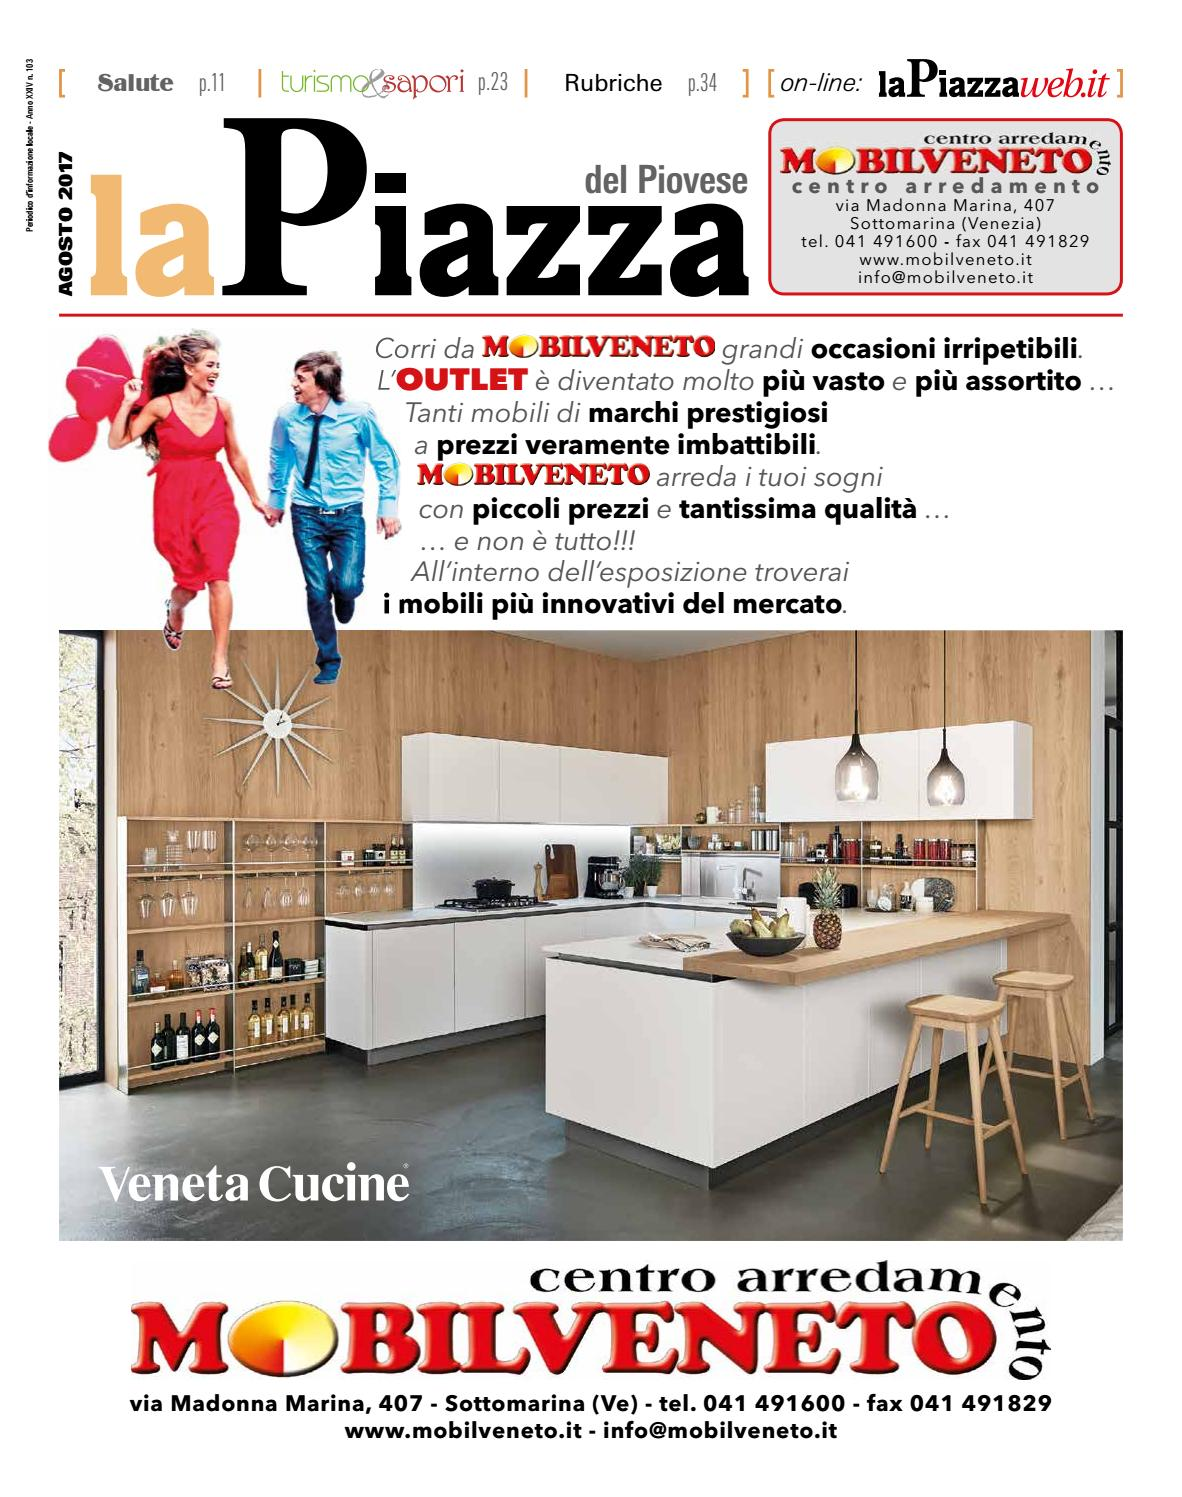 Piovese ago2017 n103 by LaPiazza give emotions - issuu